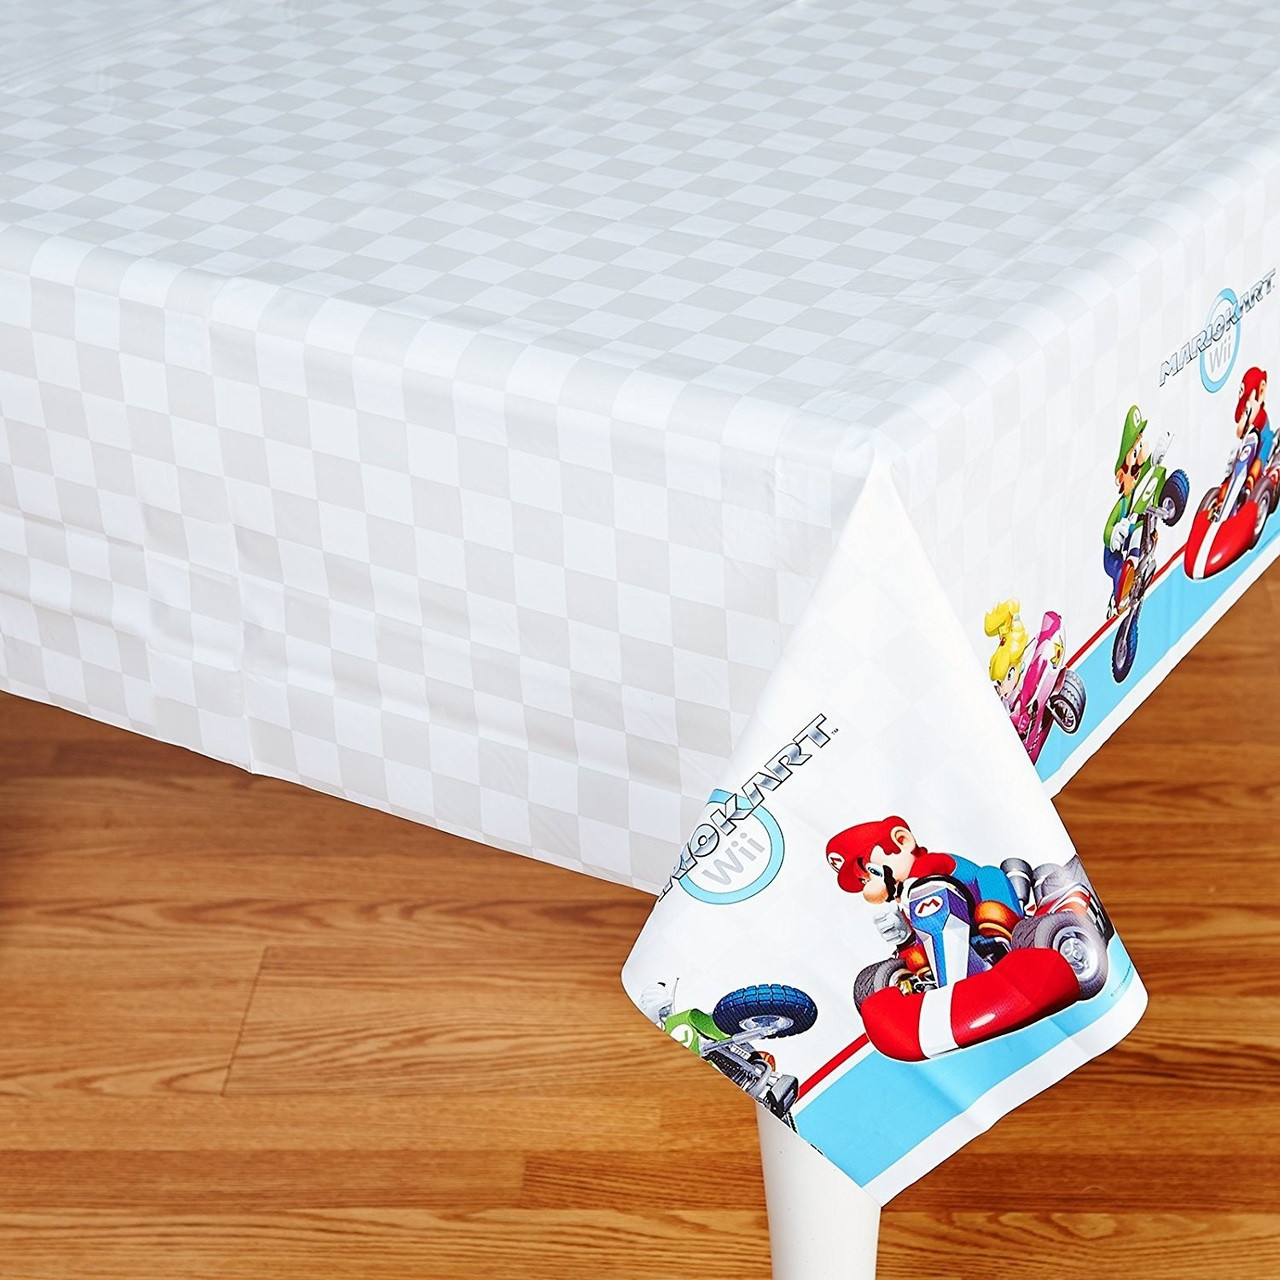 Partytoyz & Super Mario Bros Plastic Table Cover Tablecover - Mario Kart Wii